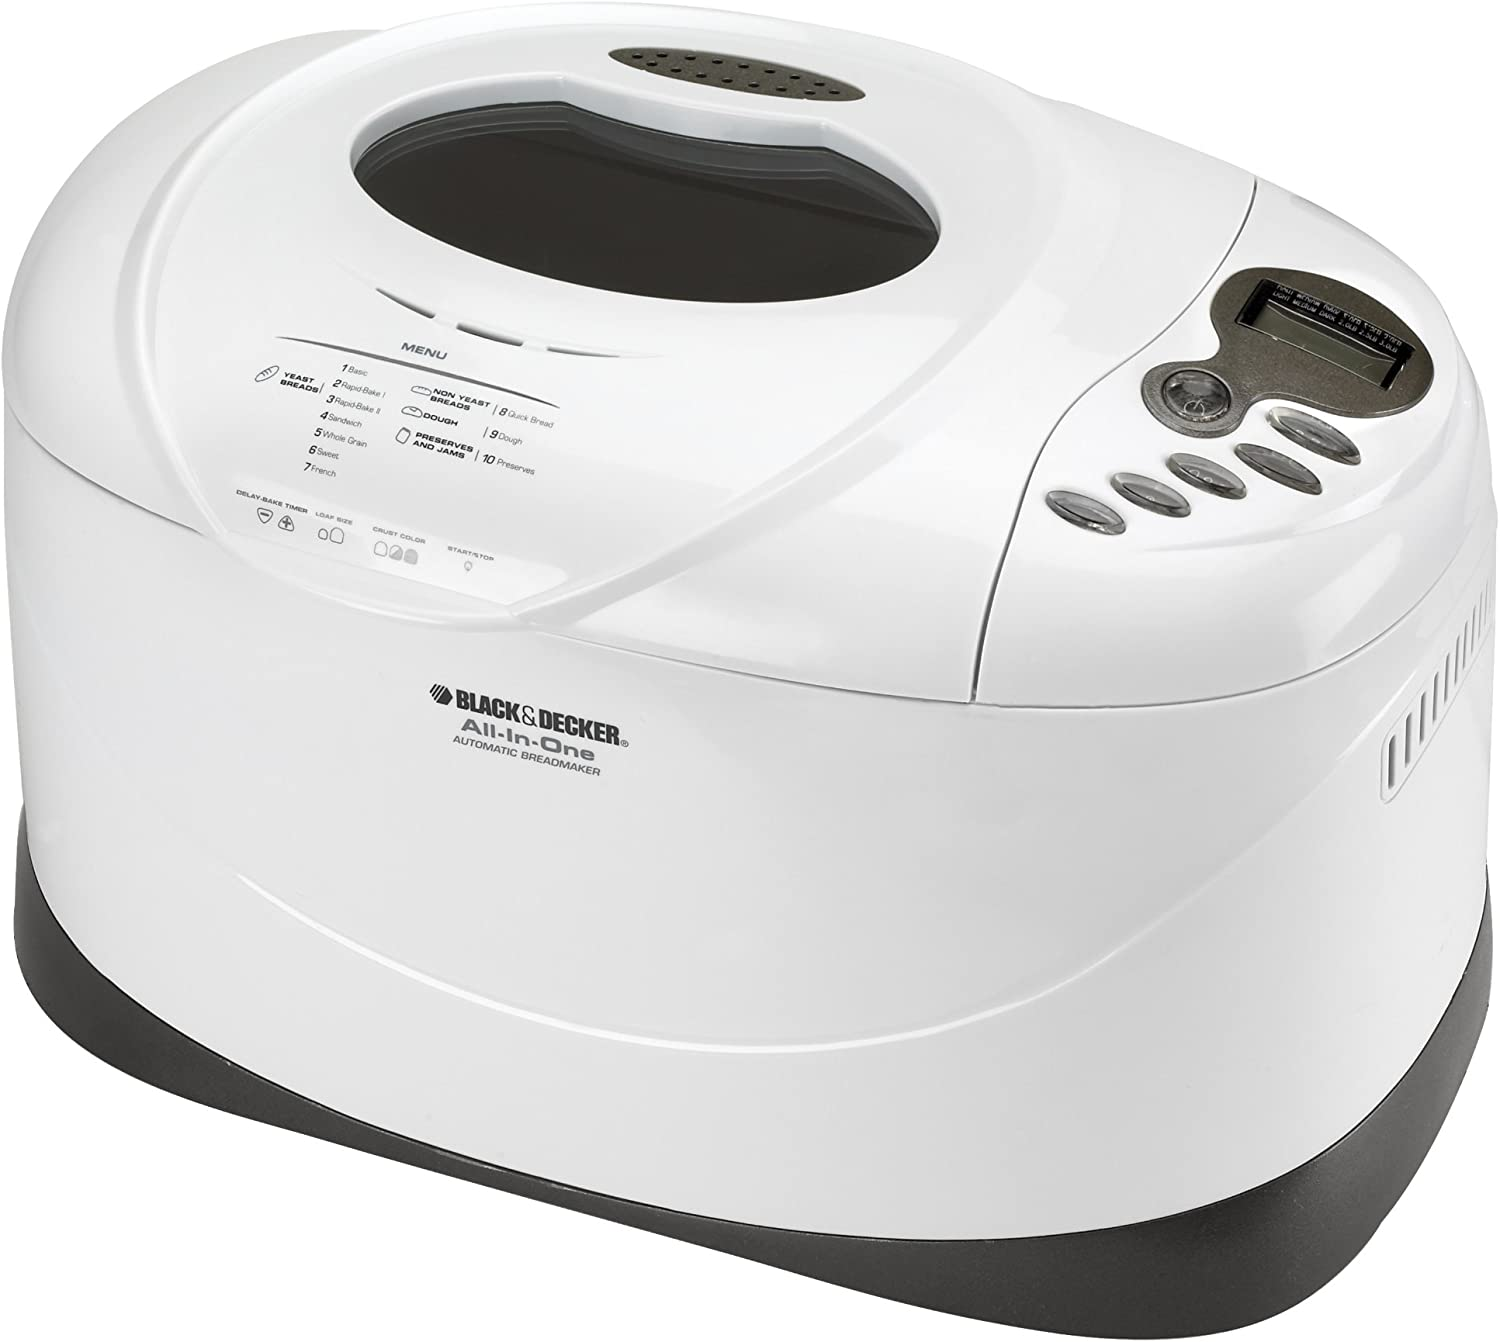 Black and Decker Bread Maker Kneading Paddle for Model B6000C Choose 1 or 2